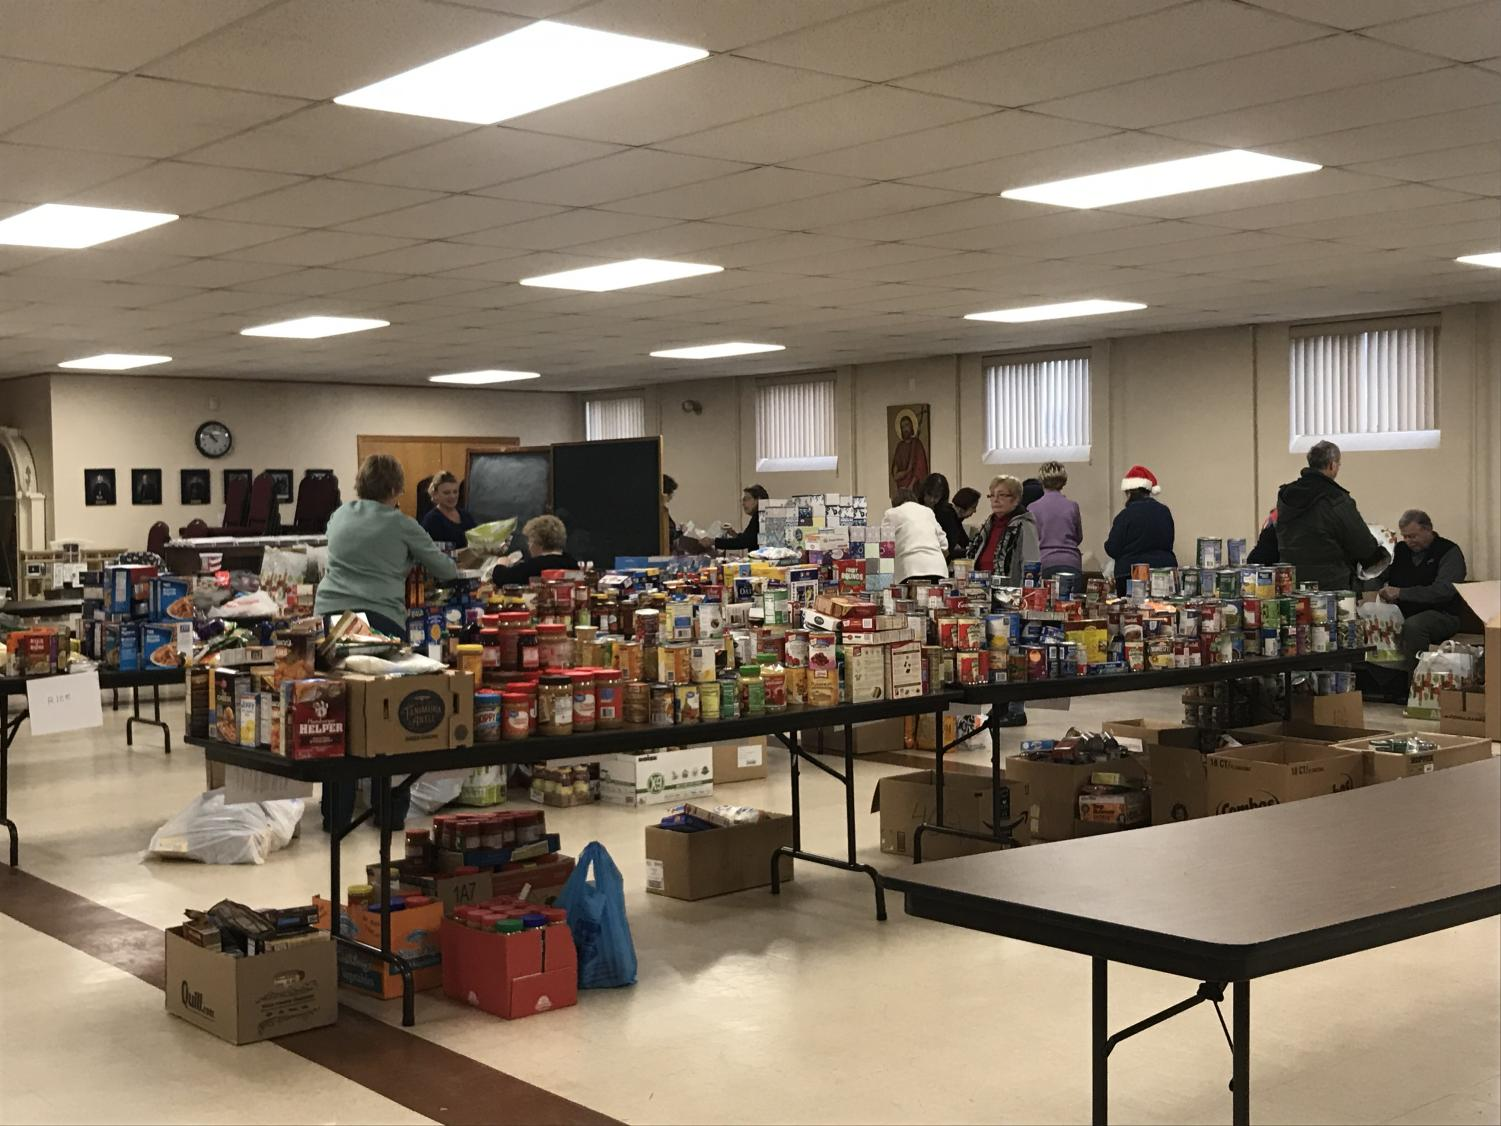 Members of local churches organize supplies donated to the St. Vincent de Paul Soup Kitchen.  The groceries were given to local this past Christmas season.   | Photo courtesy of LaDonna McCrary